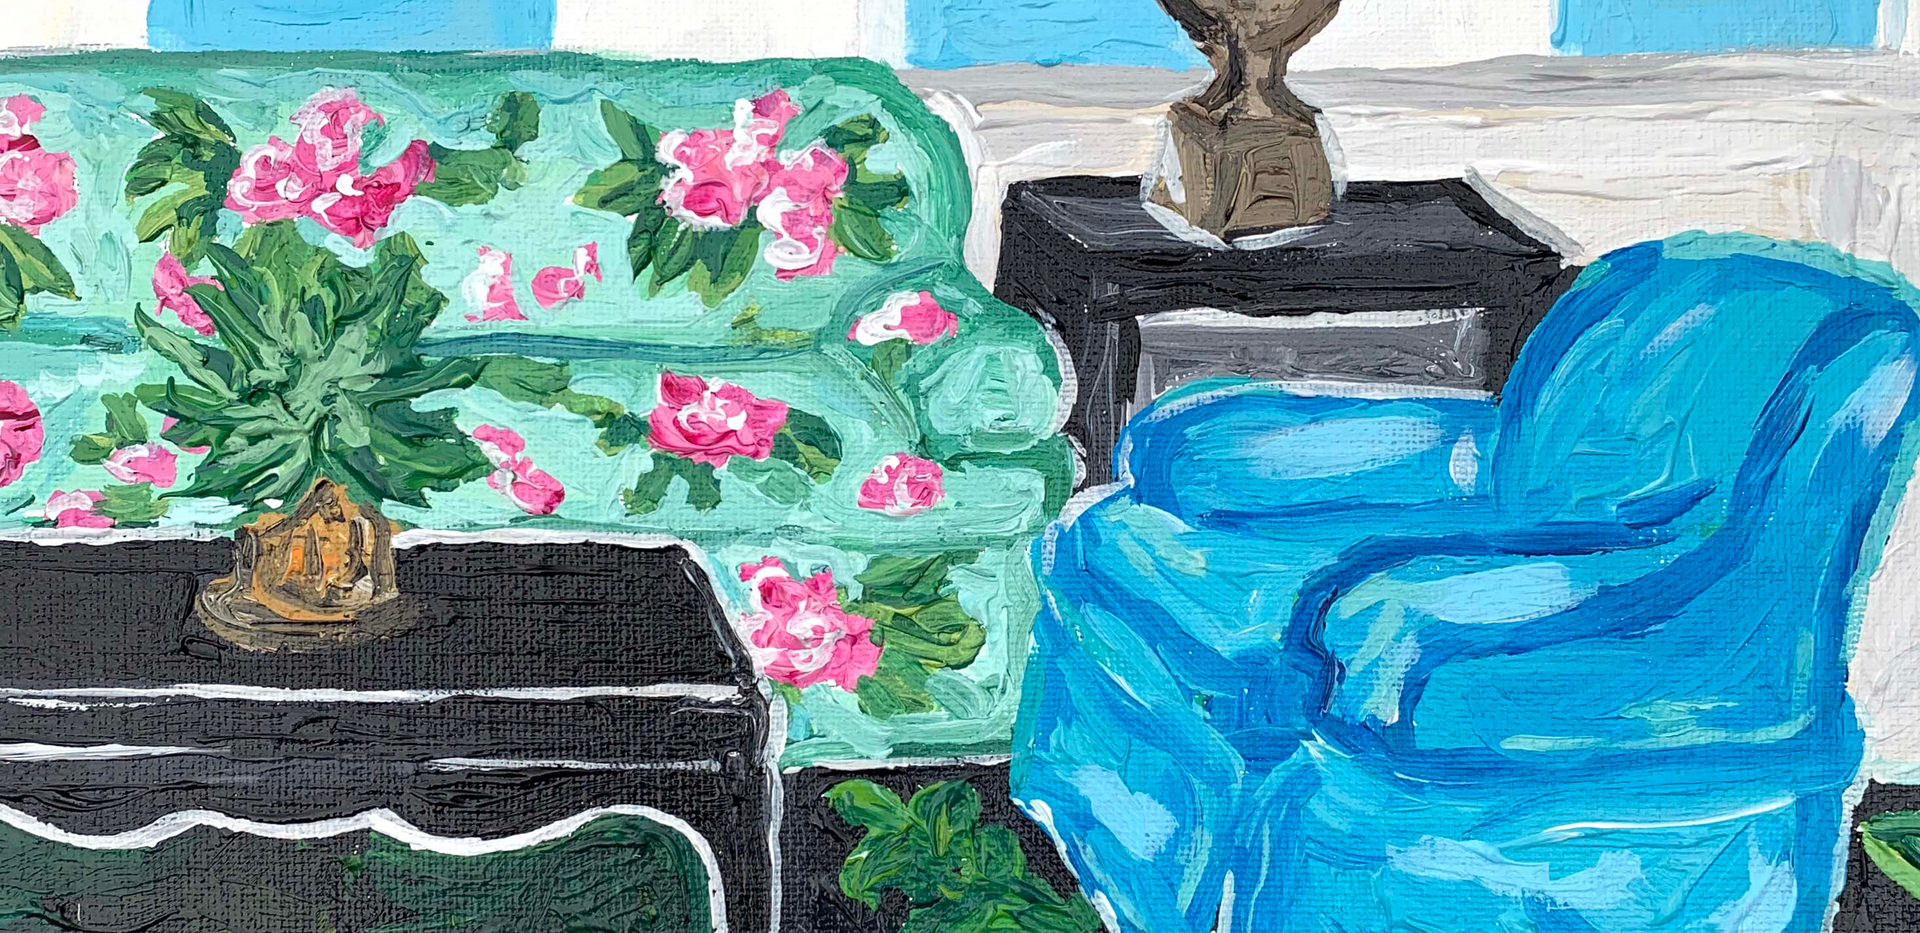 A Place to Sit - details